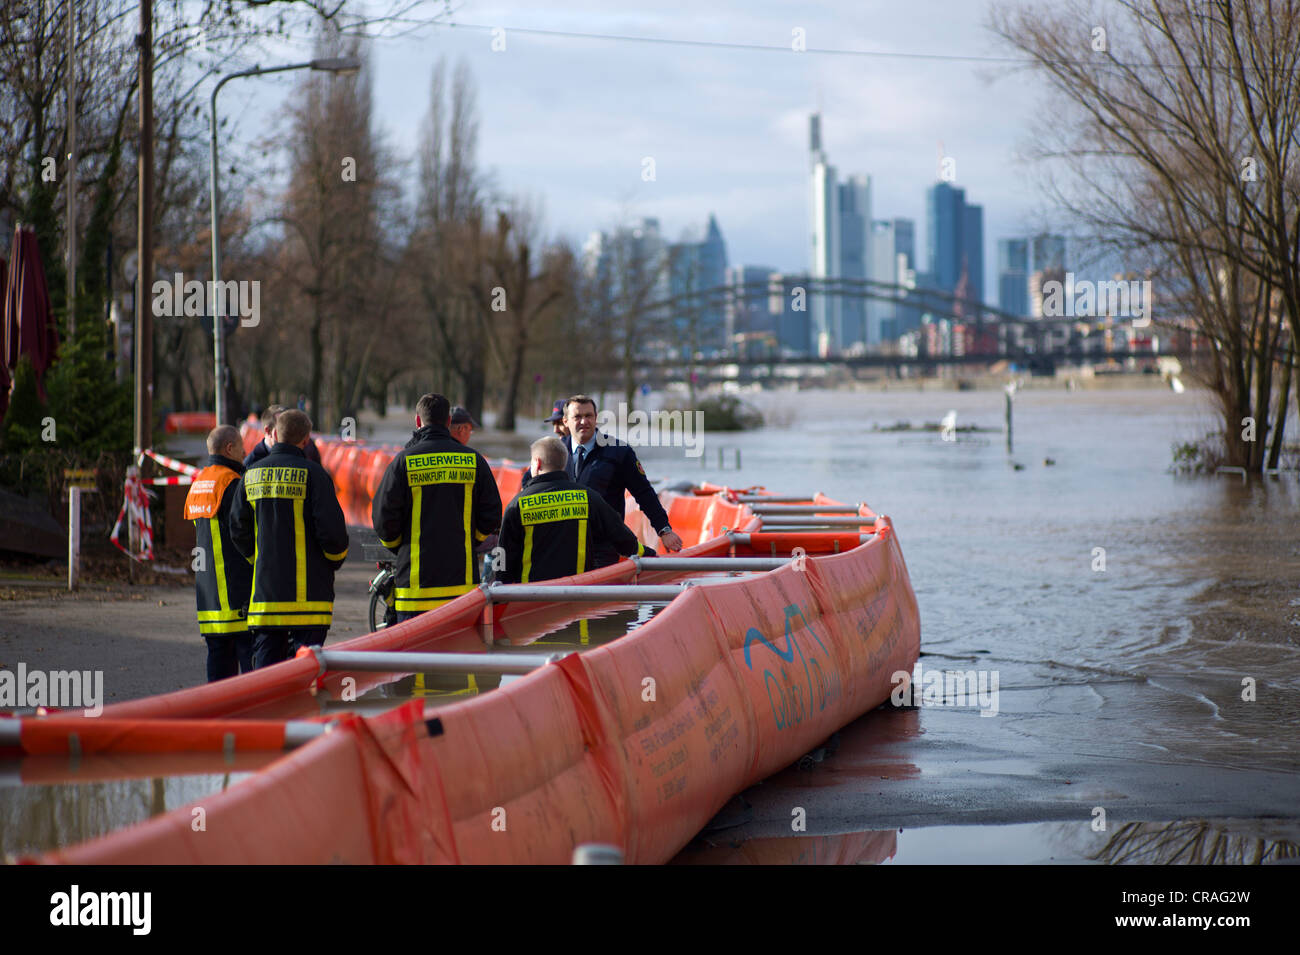 Artificial flood protection dam QUICK DAMM SYSTEM, fire service monitoring the flooding, Frankfurt, Hesse, Germany, Stock Photo